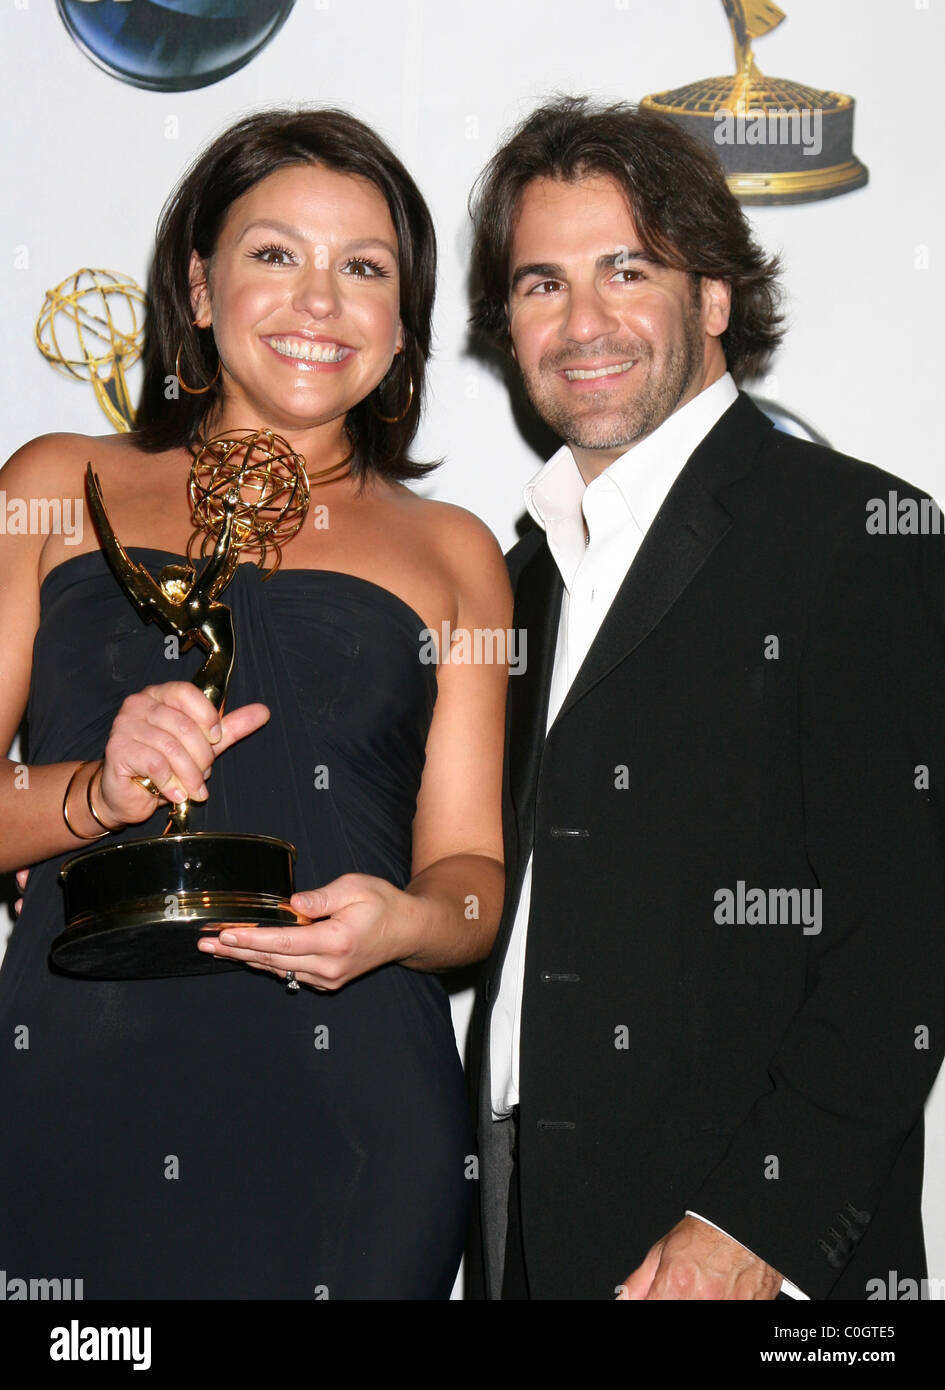 rachael ray and her husband john m cusimano 35th annual daytime